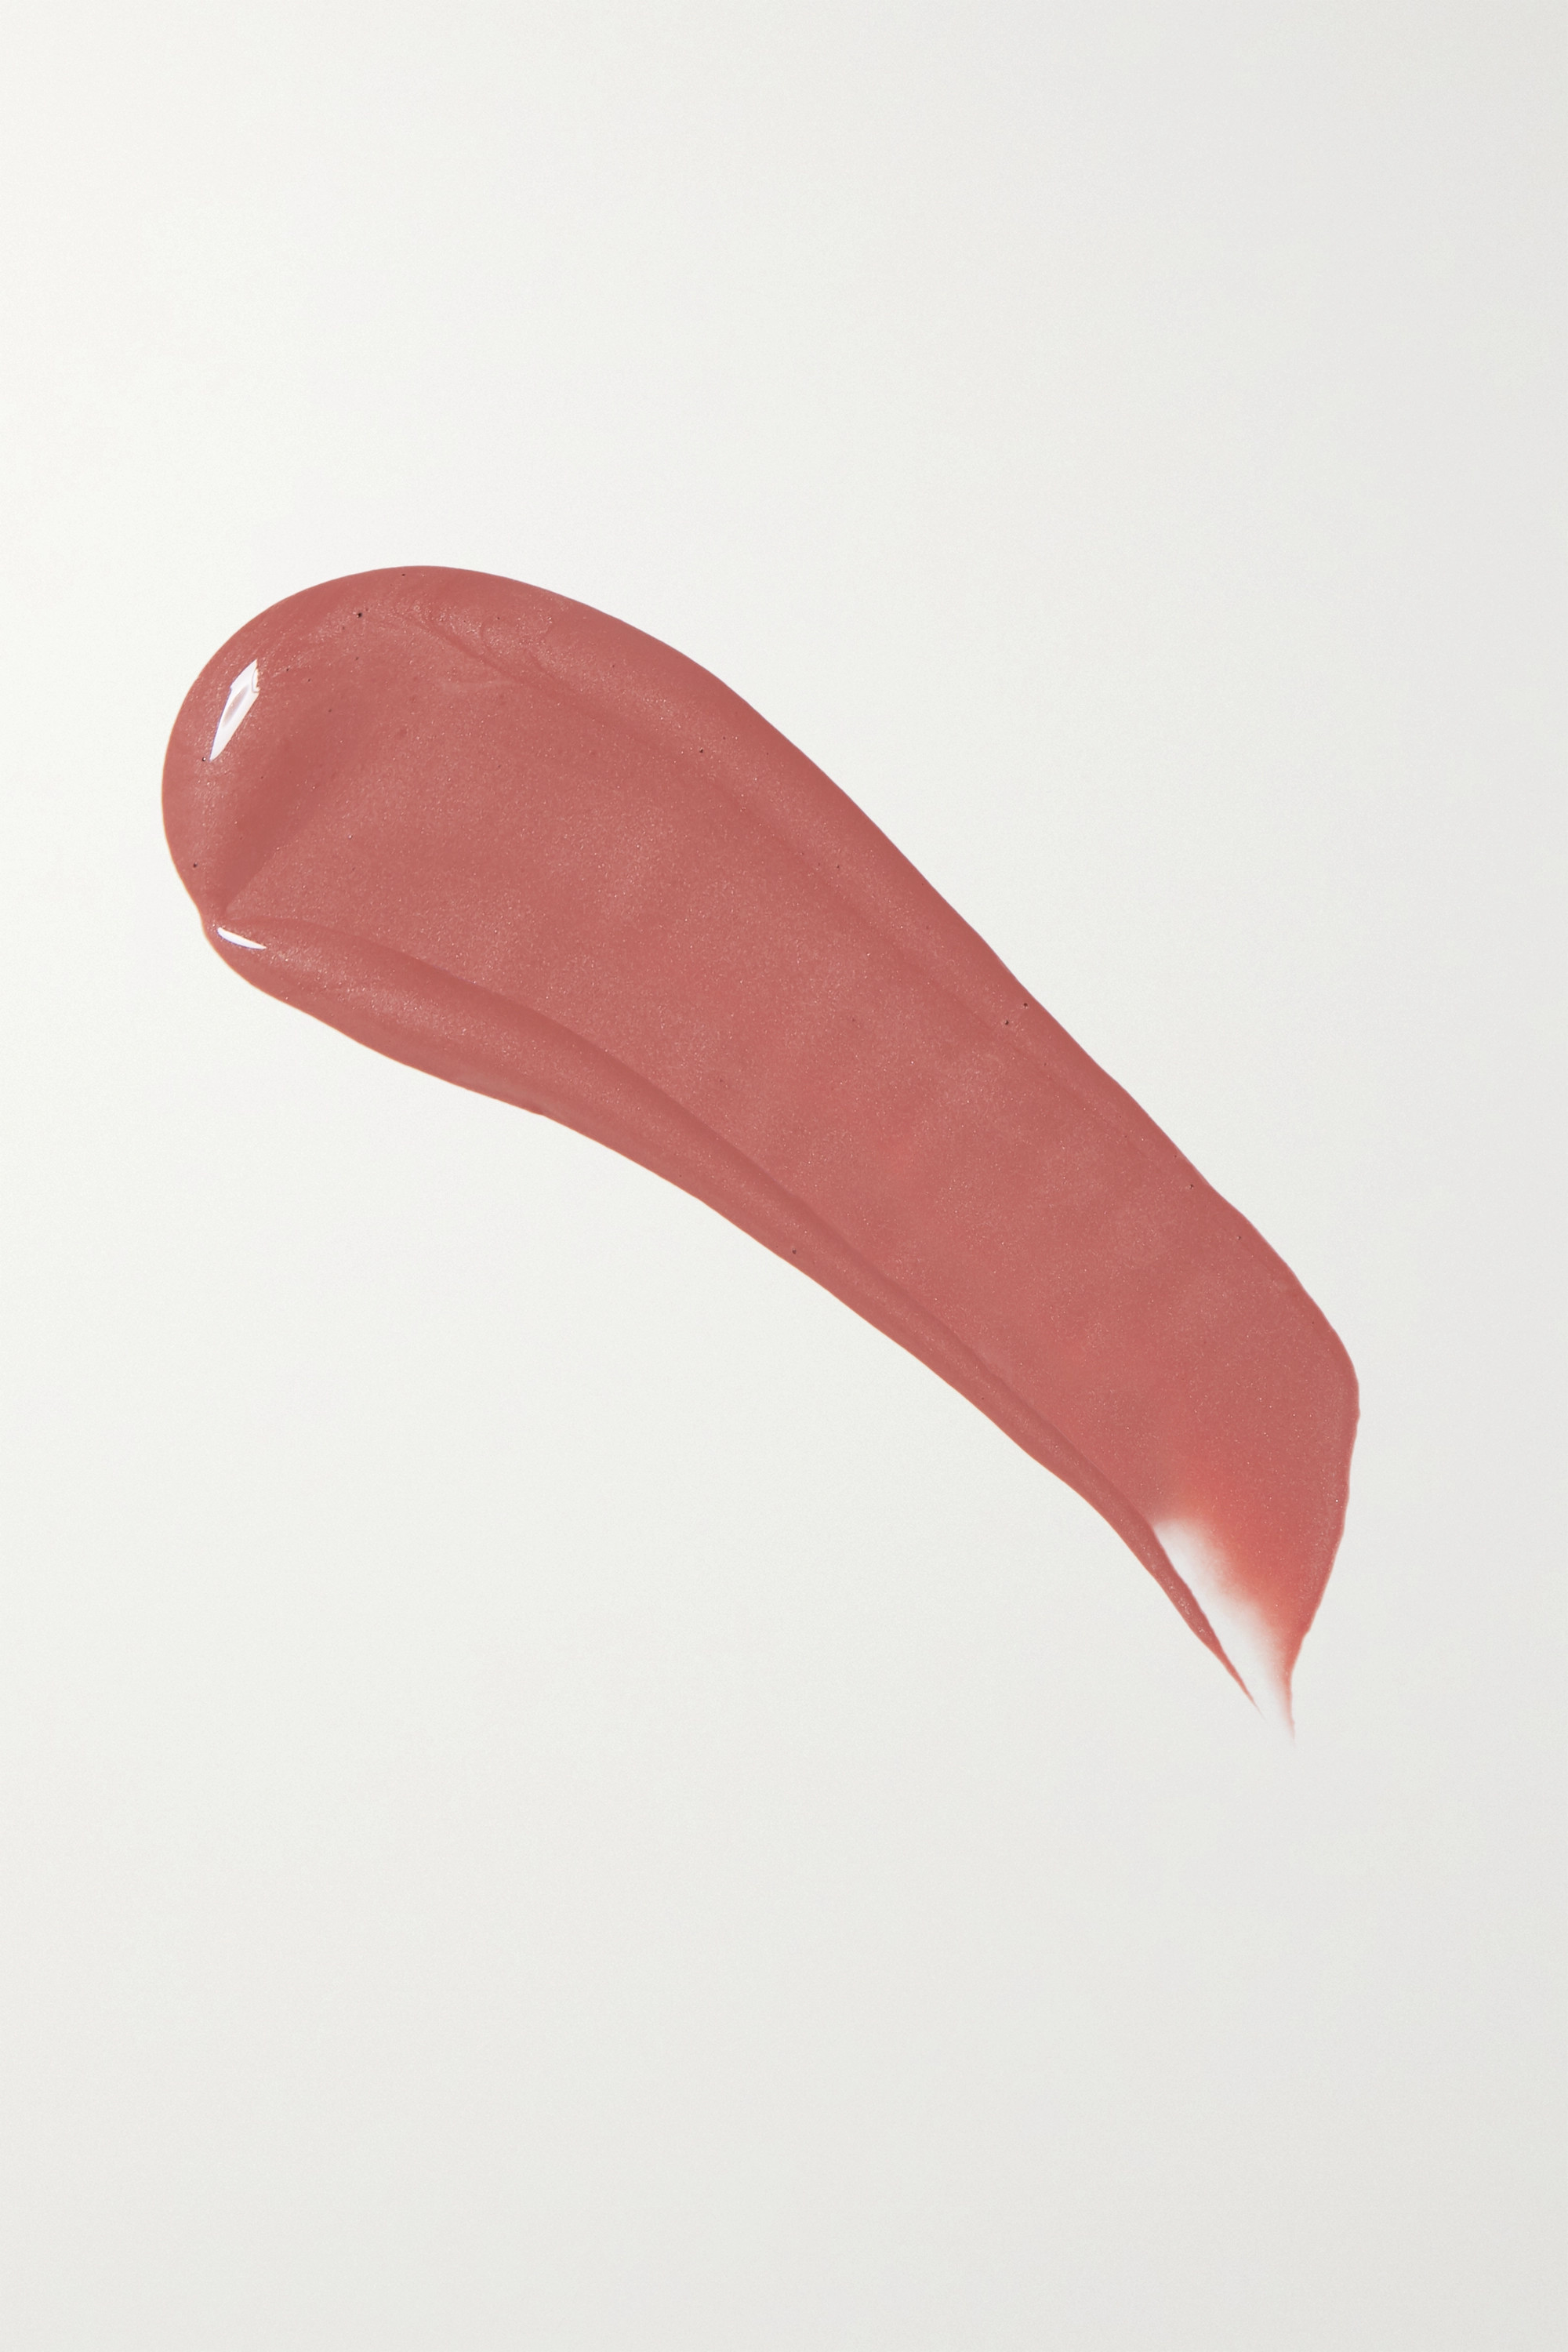 Charlotte Tilbury Gloss longue tenue Lip Lustre Luxe, Pillow Talk